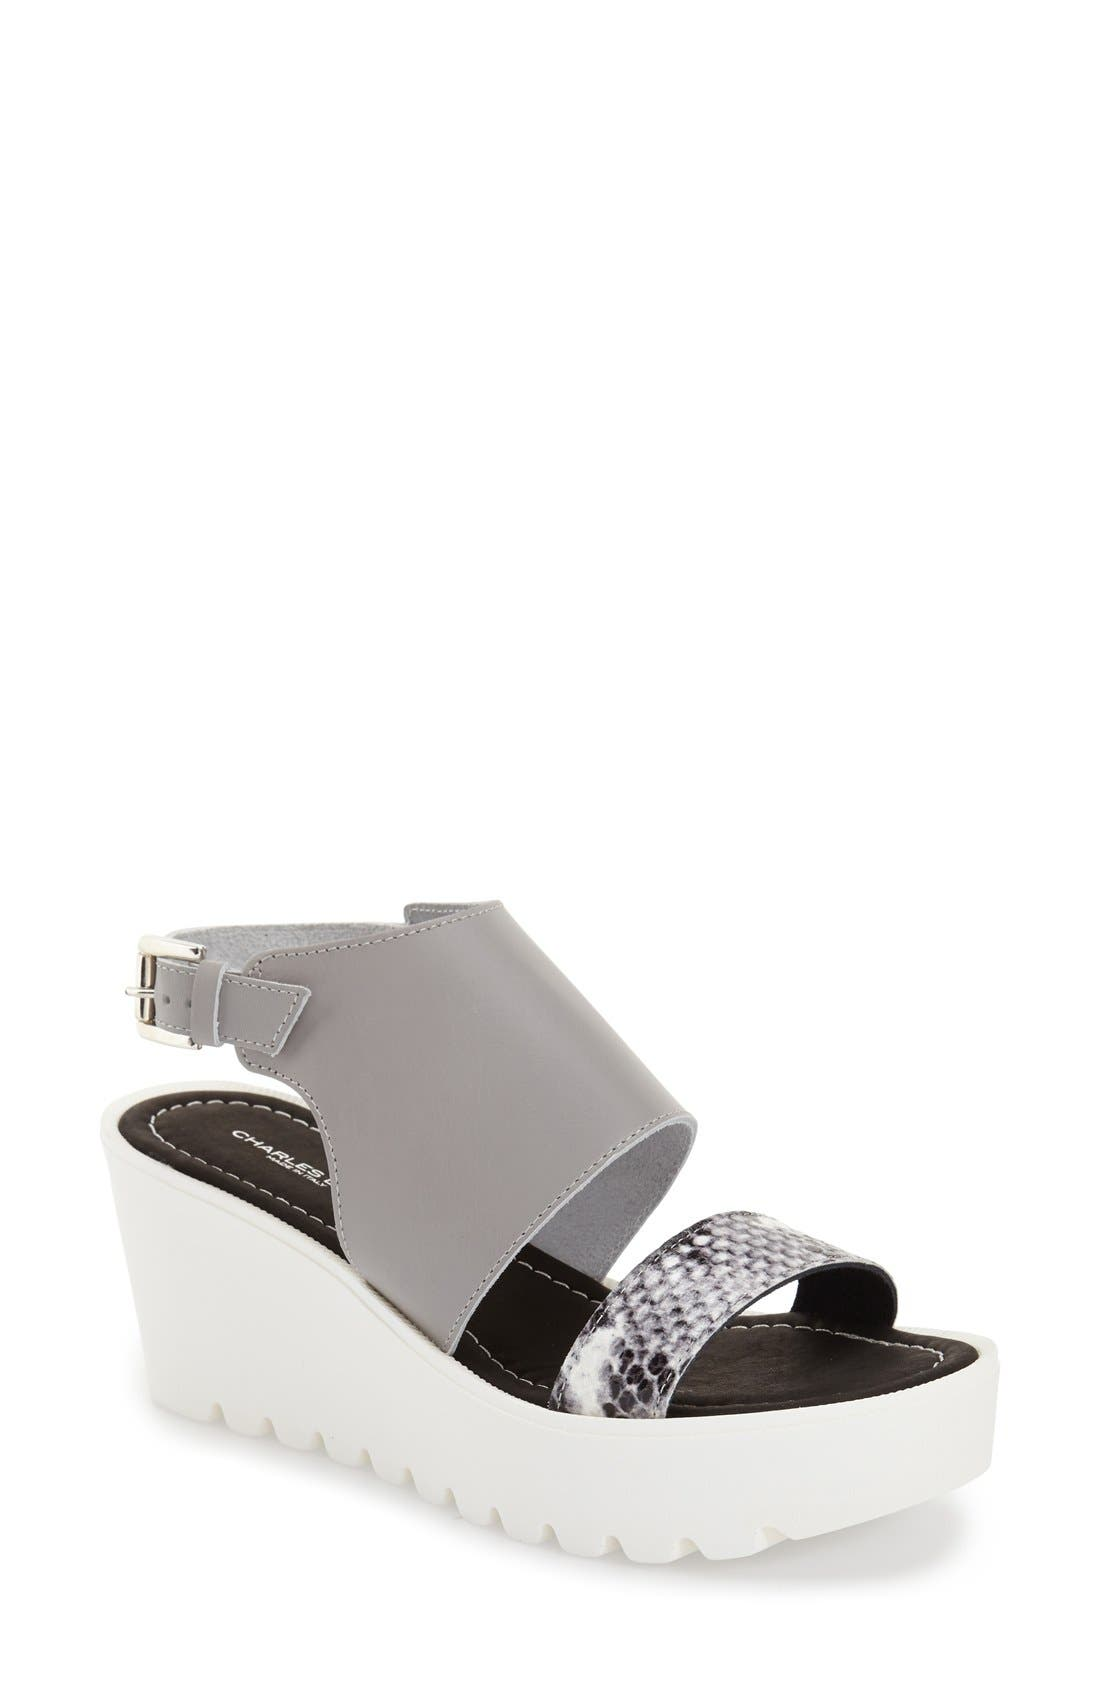 Alternate Image 1 Selected - Charles David 'Apria' Wedge Sandal (Women)